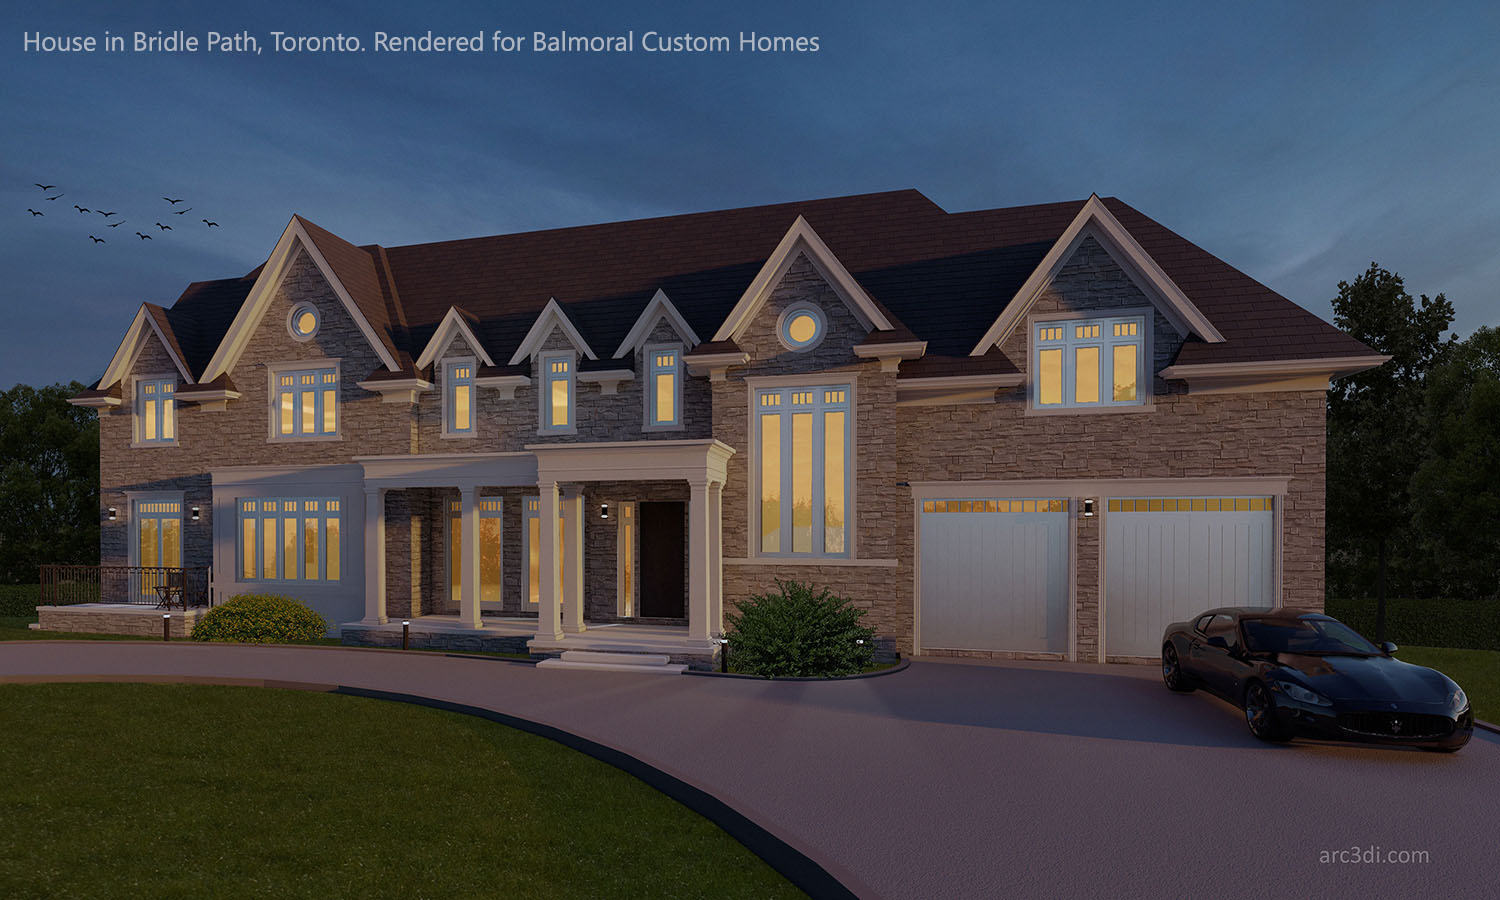 3D Rendering of a house in Bridle Path, Toronto